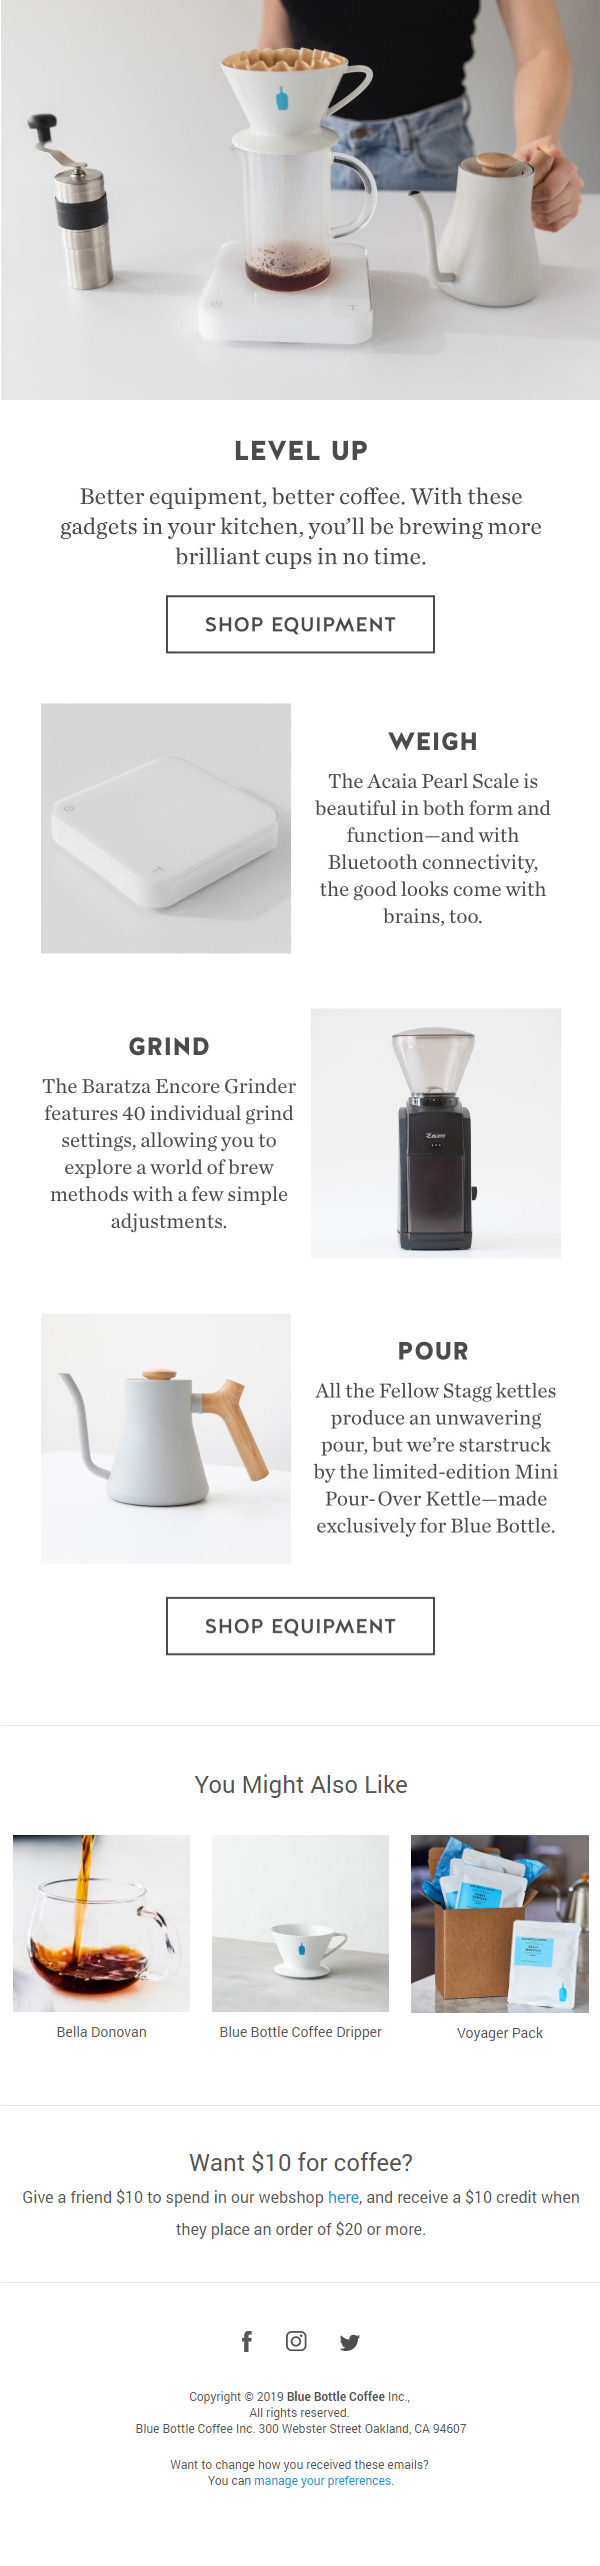 Email de Blue Bottle Coffee